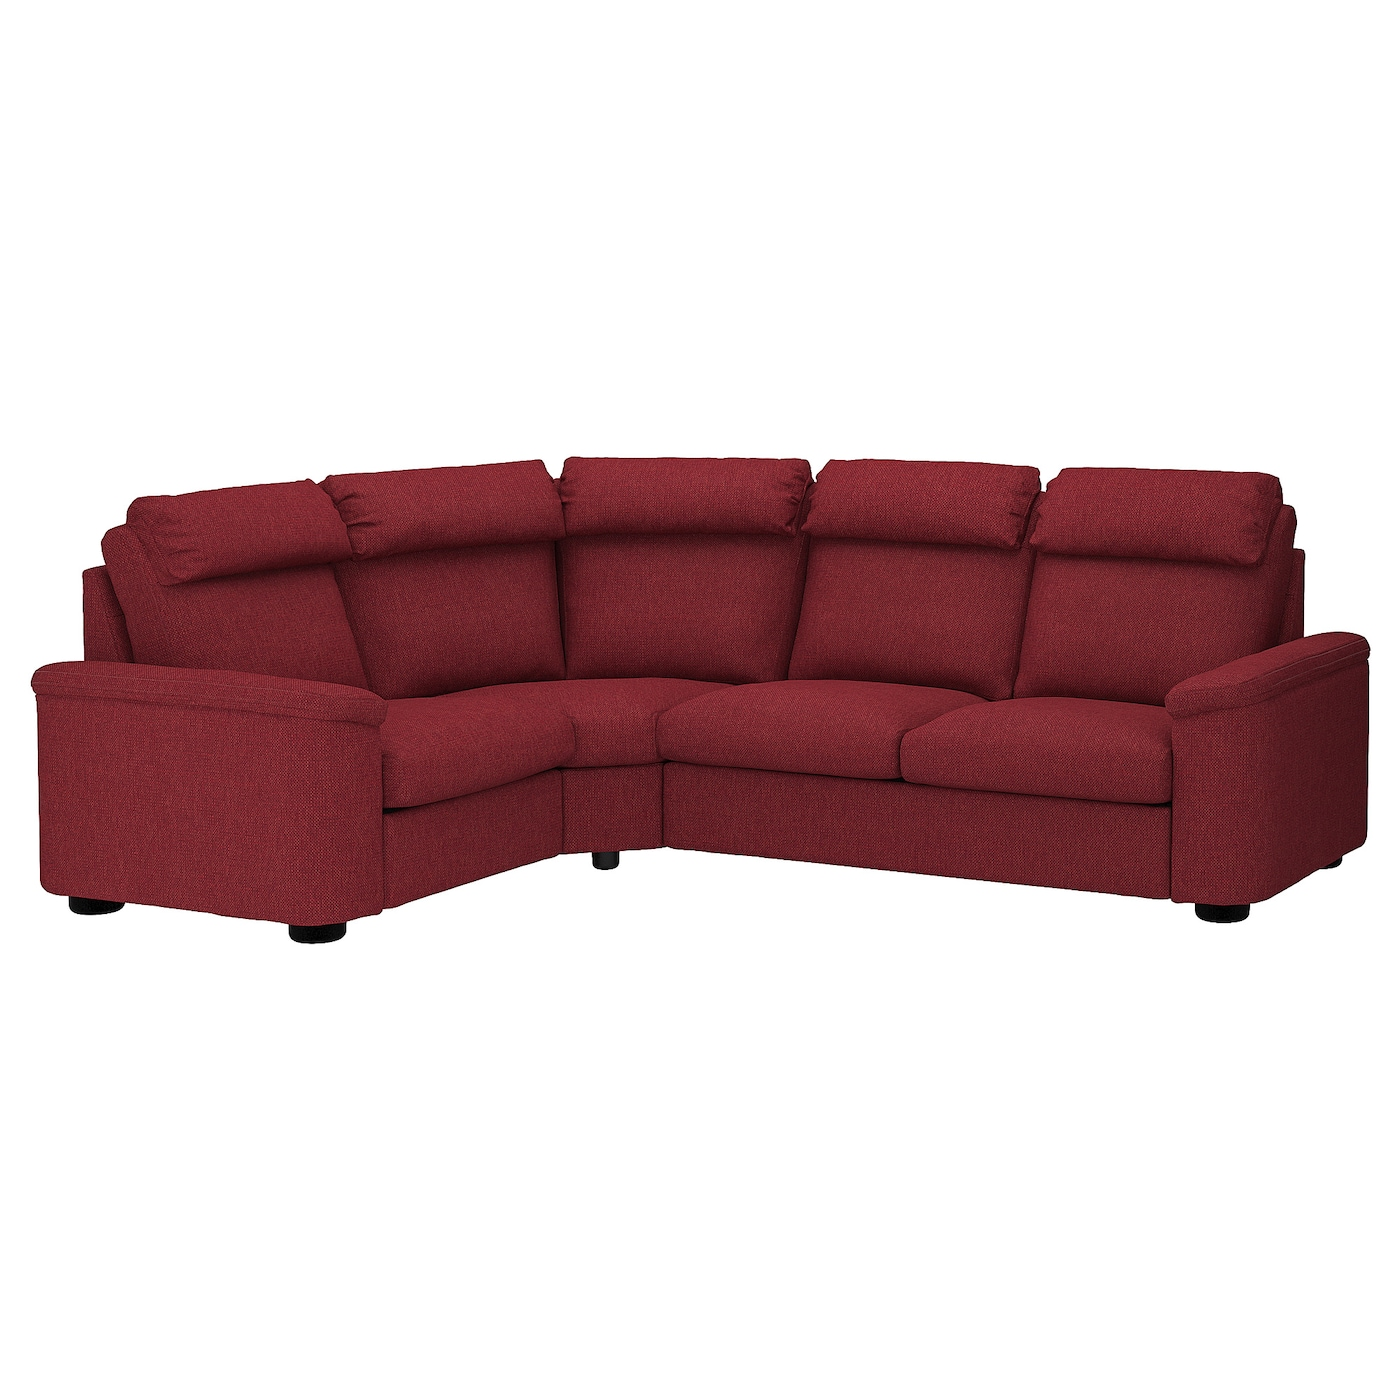 IKEA LIDHULT corner sofa, 4-seat 10 year guarantee. Read about the terms in the guarantee brochure.